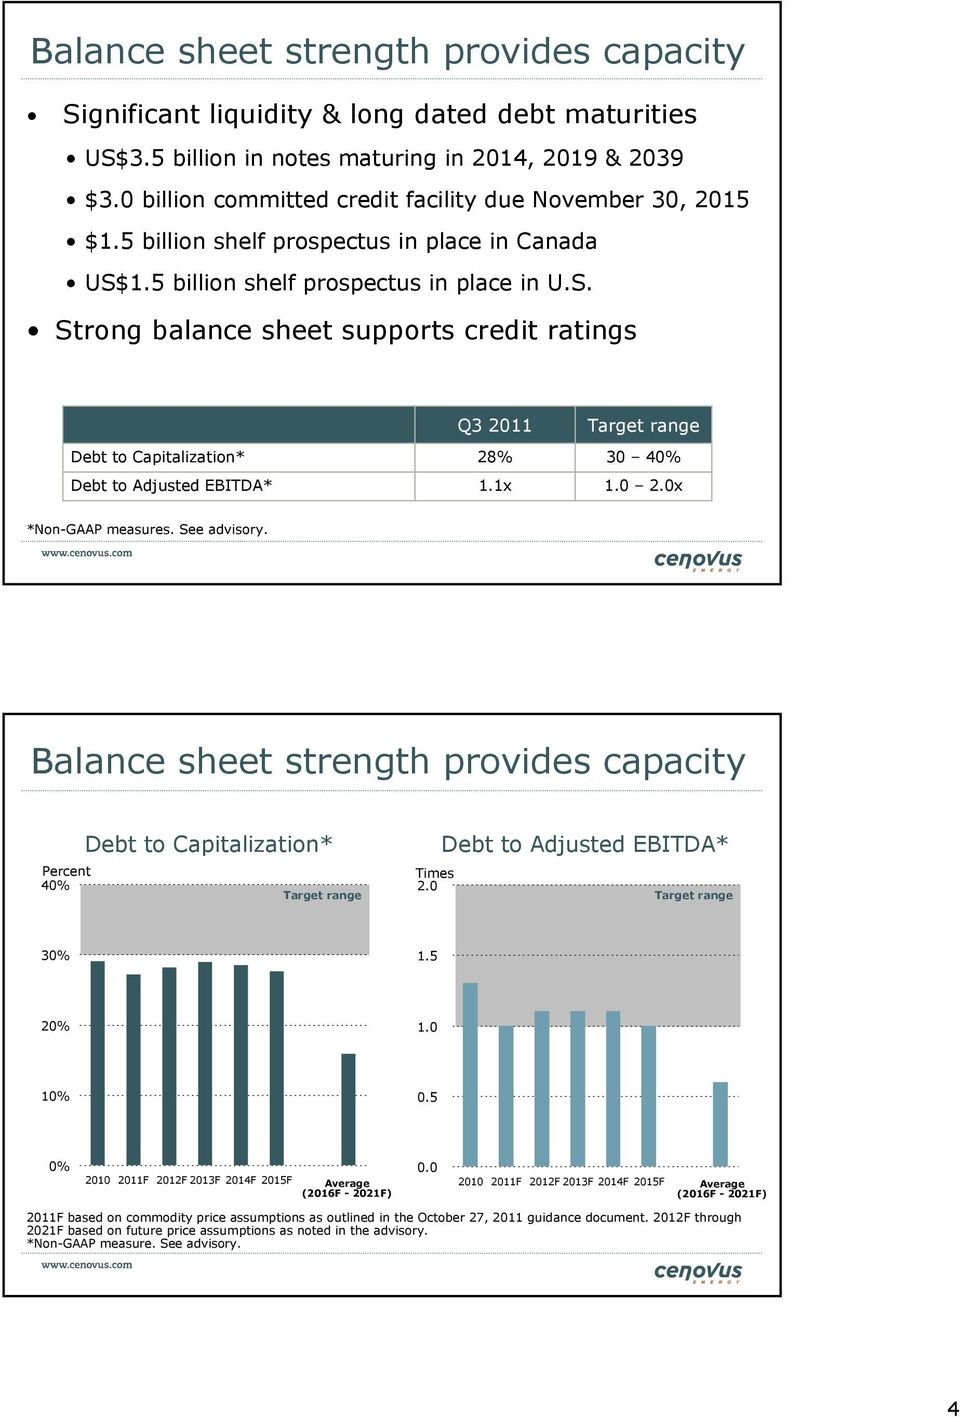 1.5 billion shelf prospectus in place in U.S. Strong balance sheet supports credit ratings Debt to Capitalization* Debt to Adjusted EBITDA* Q3 2011 28% 1.1x Target range 30 40% 1.0 2.